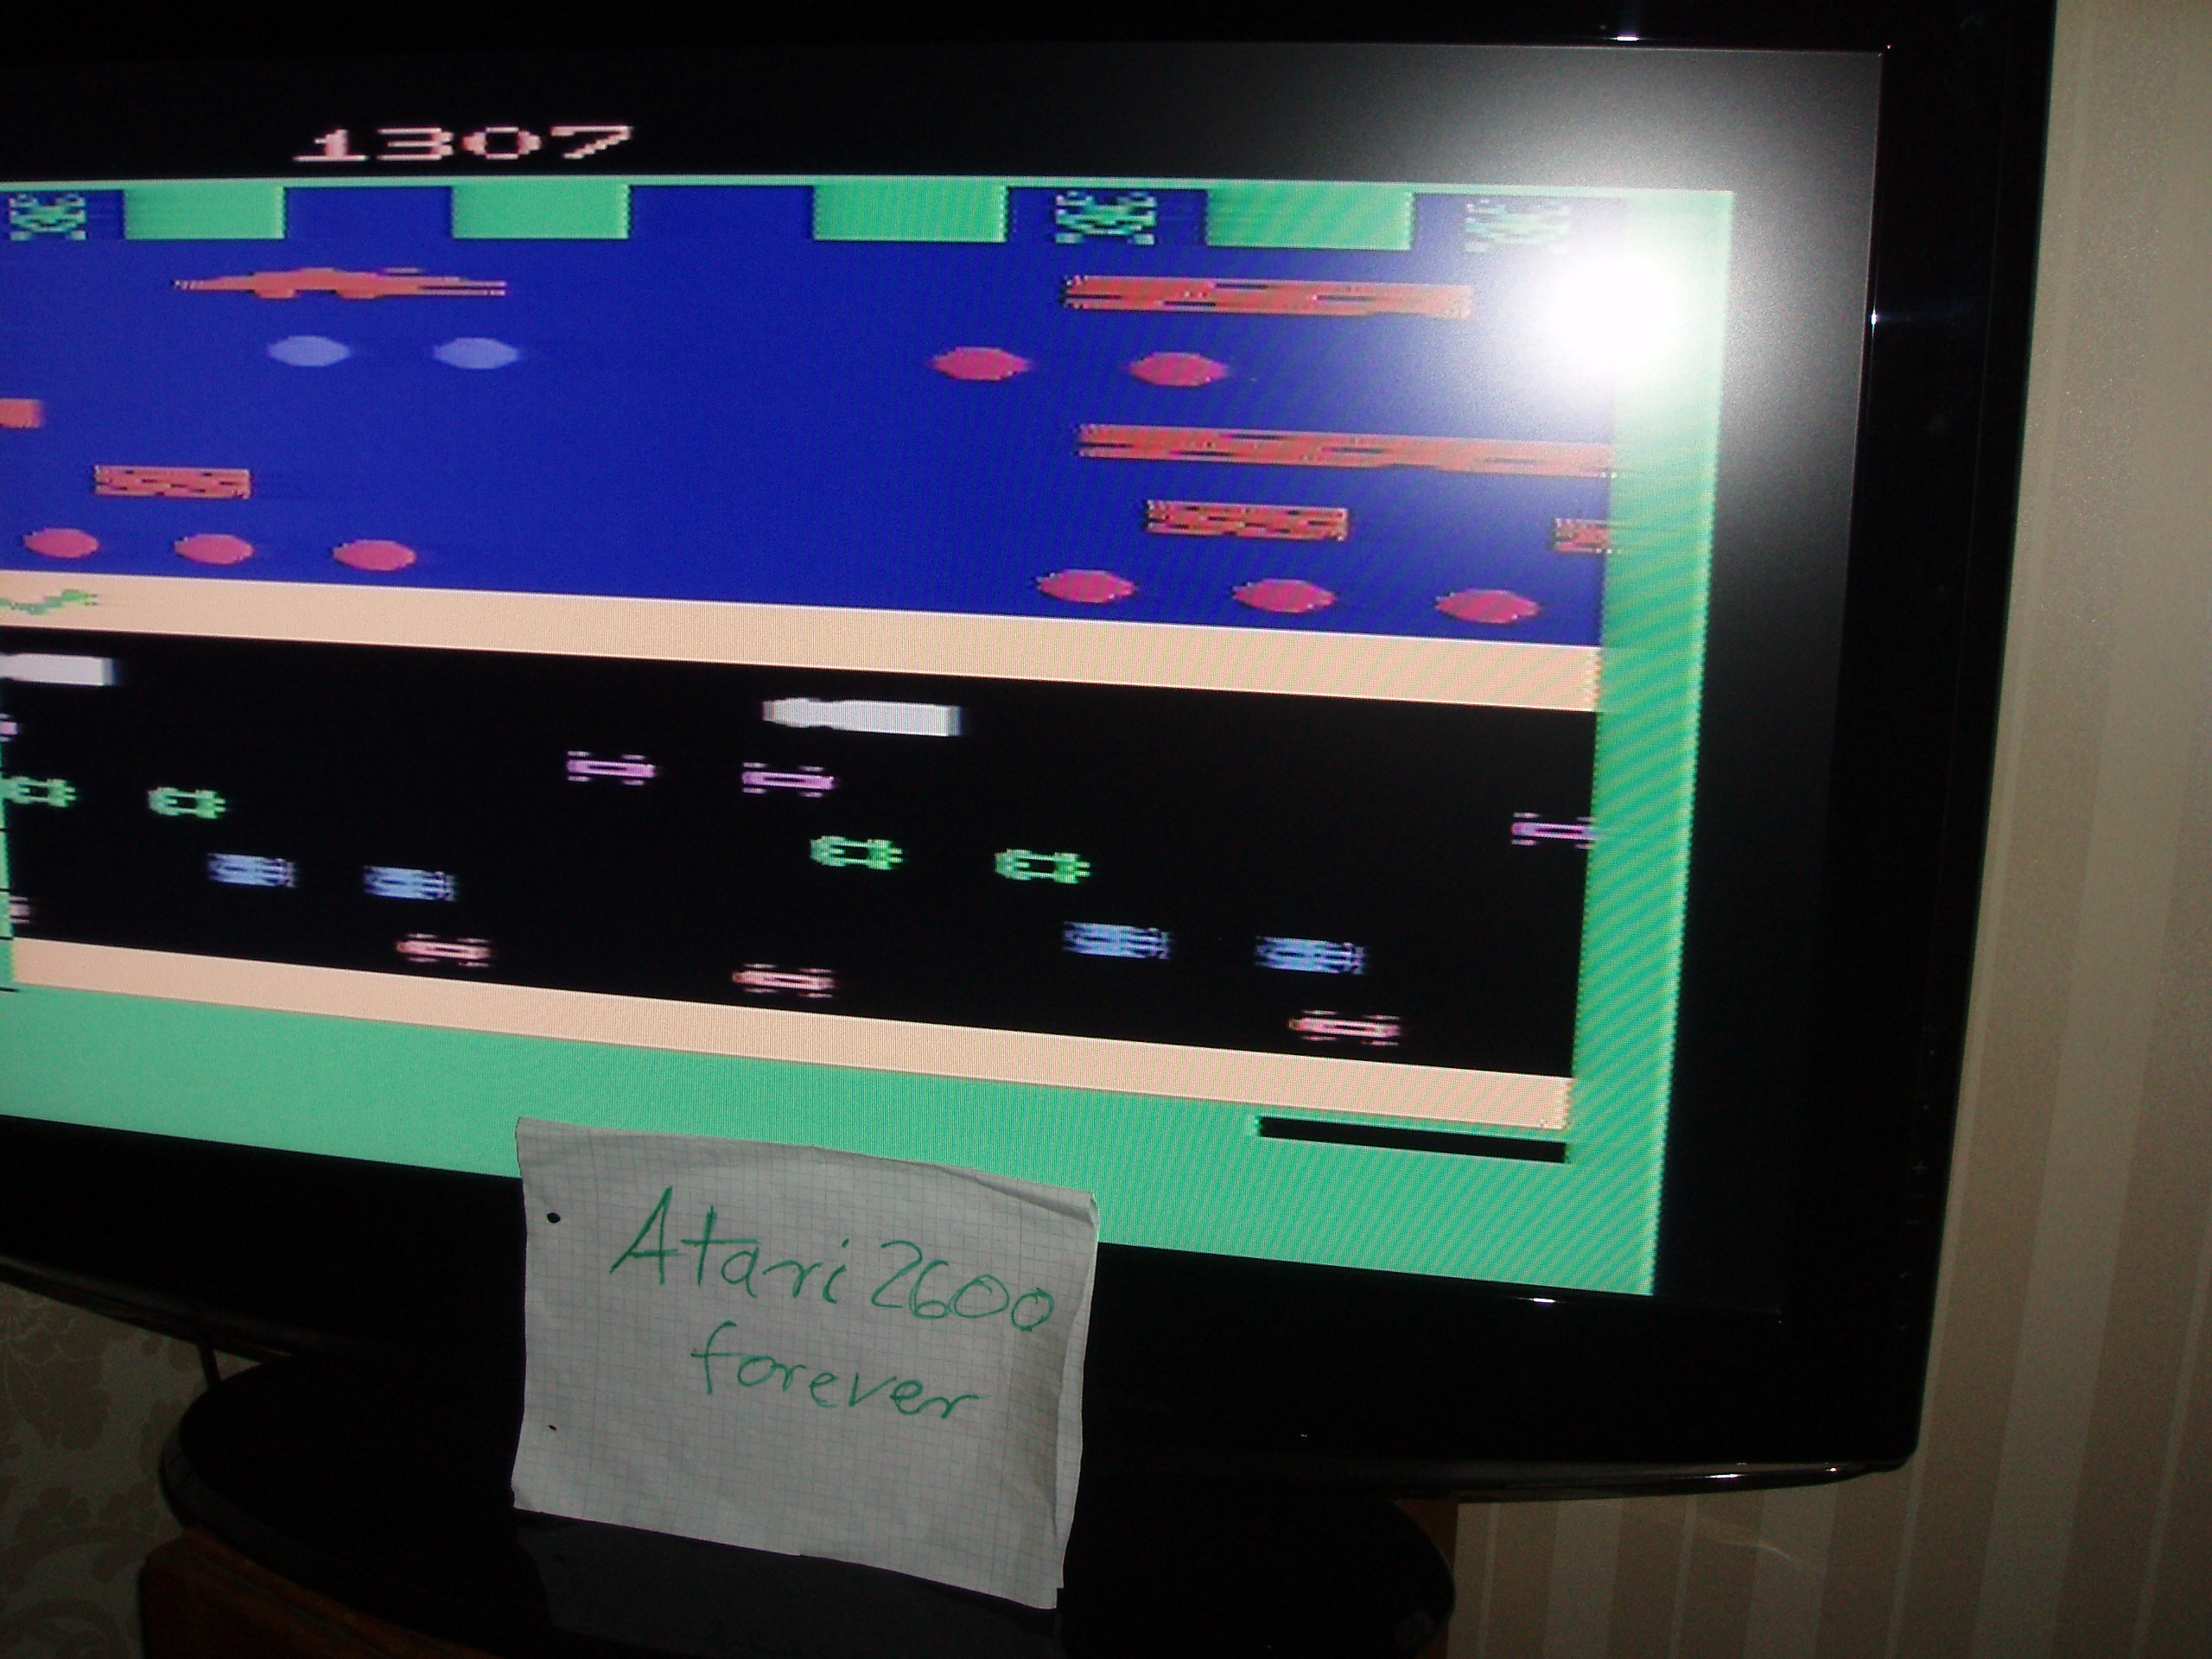 atari2600forever: Frogger (Atari 2600 Novice/B) 1,307 points on 2017-02-08 03:35:52